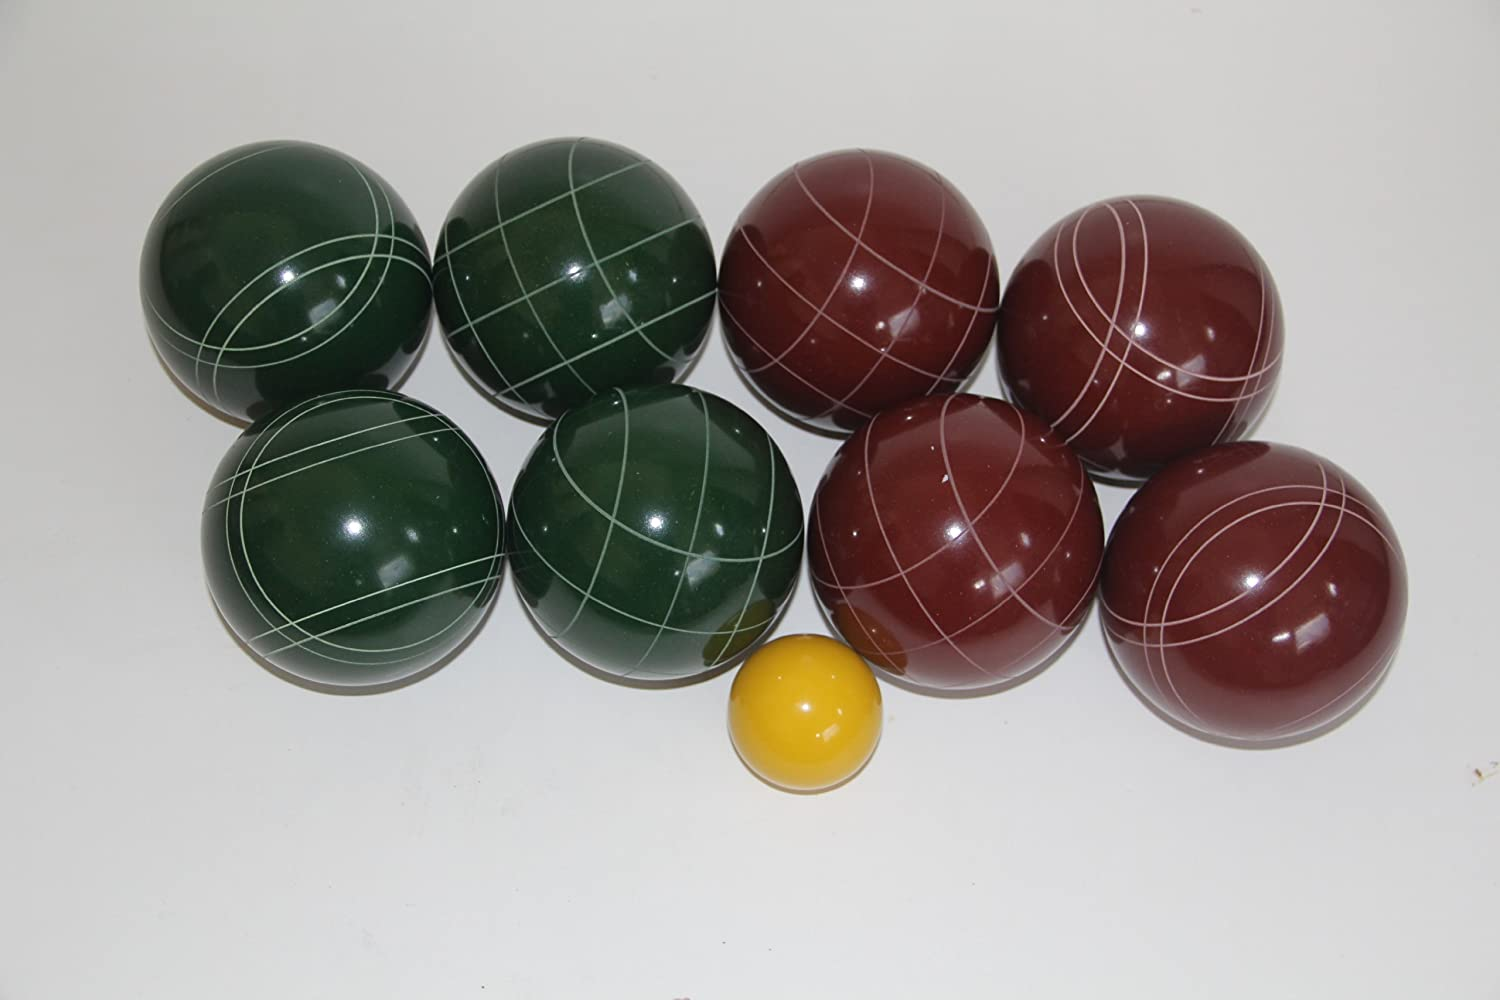 Premium Quality EPCO Tournament Bocce Set – 110mm Red and Green Bocce Balls -… günstig